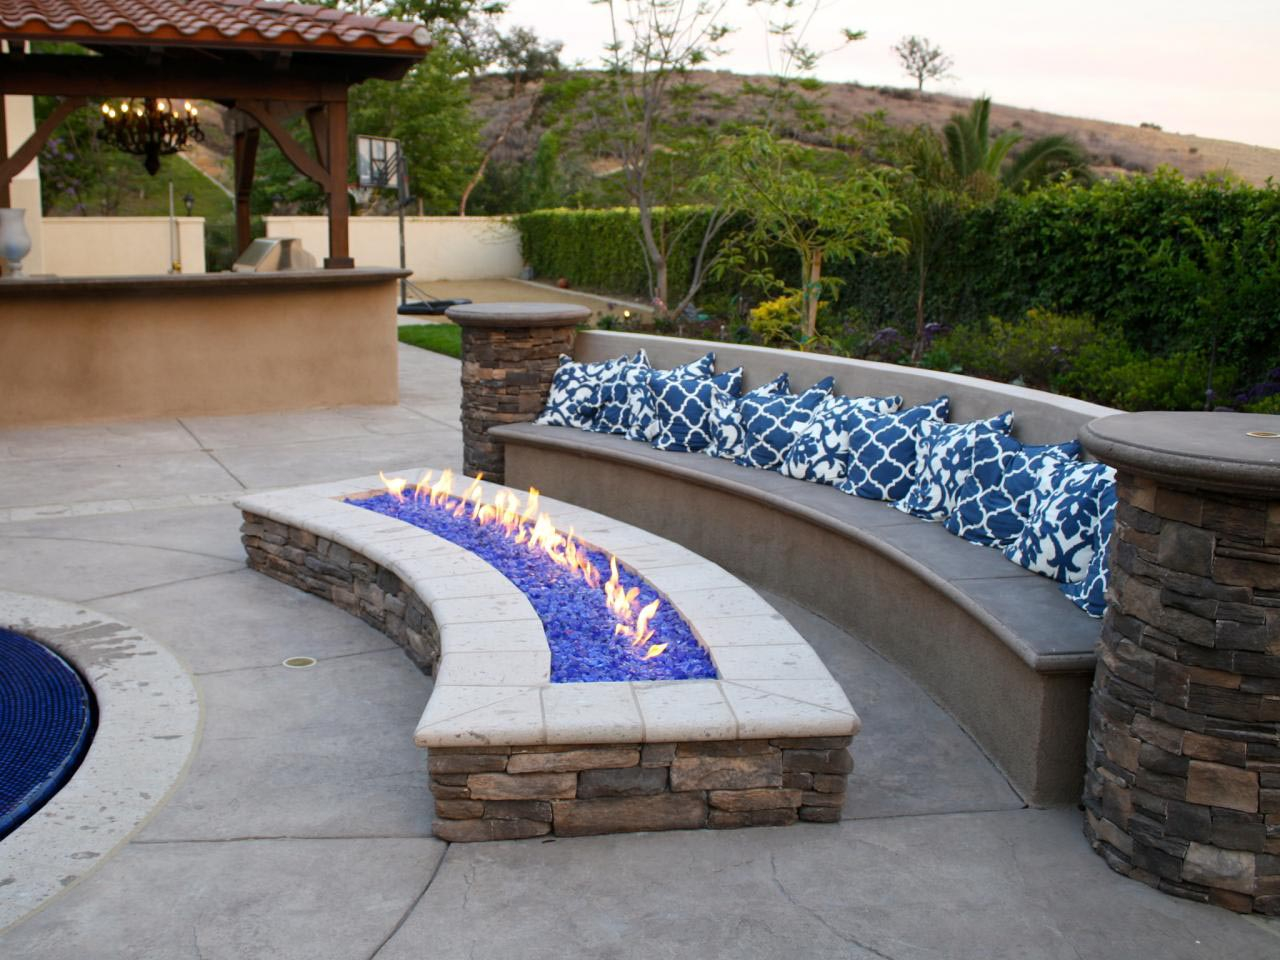 Outdoor Fire Pit With Glass Rocks Fire Pit Design Ideas with dimensions 1280 X 960